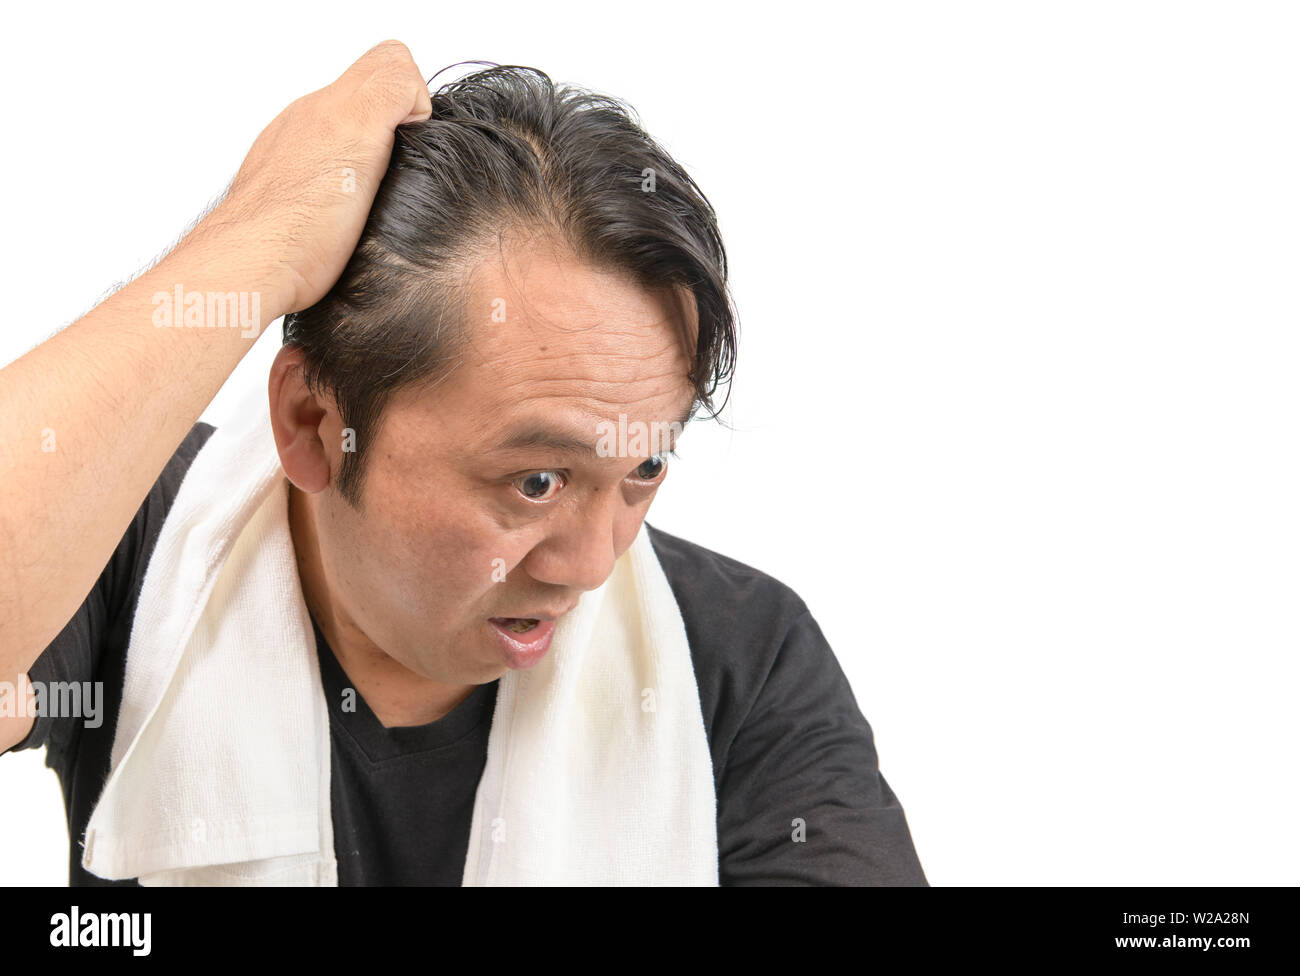 Middle-aged asian man worry about his  hair loss or alopecia and grey hair isolated on white background, Health care concept Stock Photo